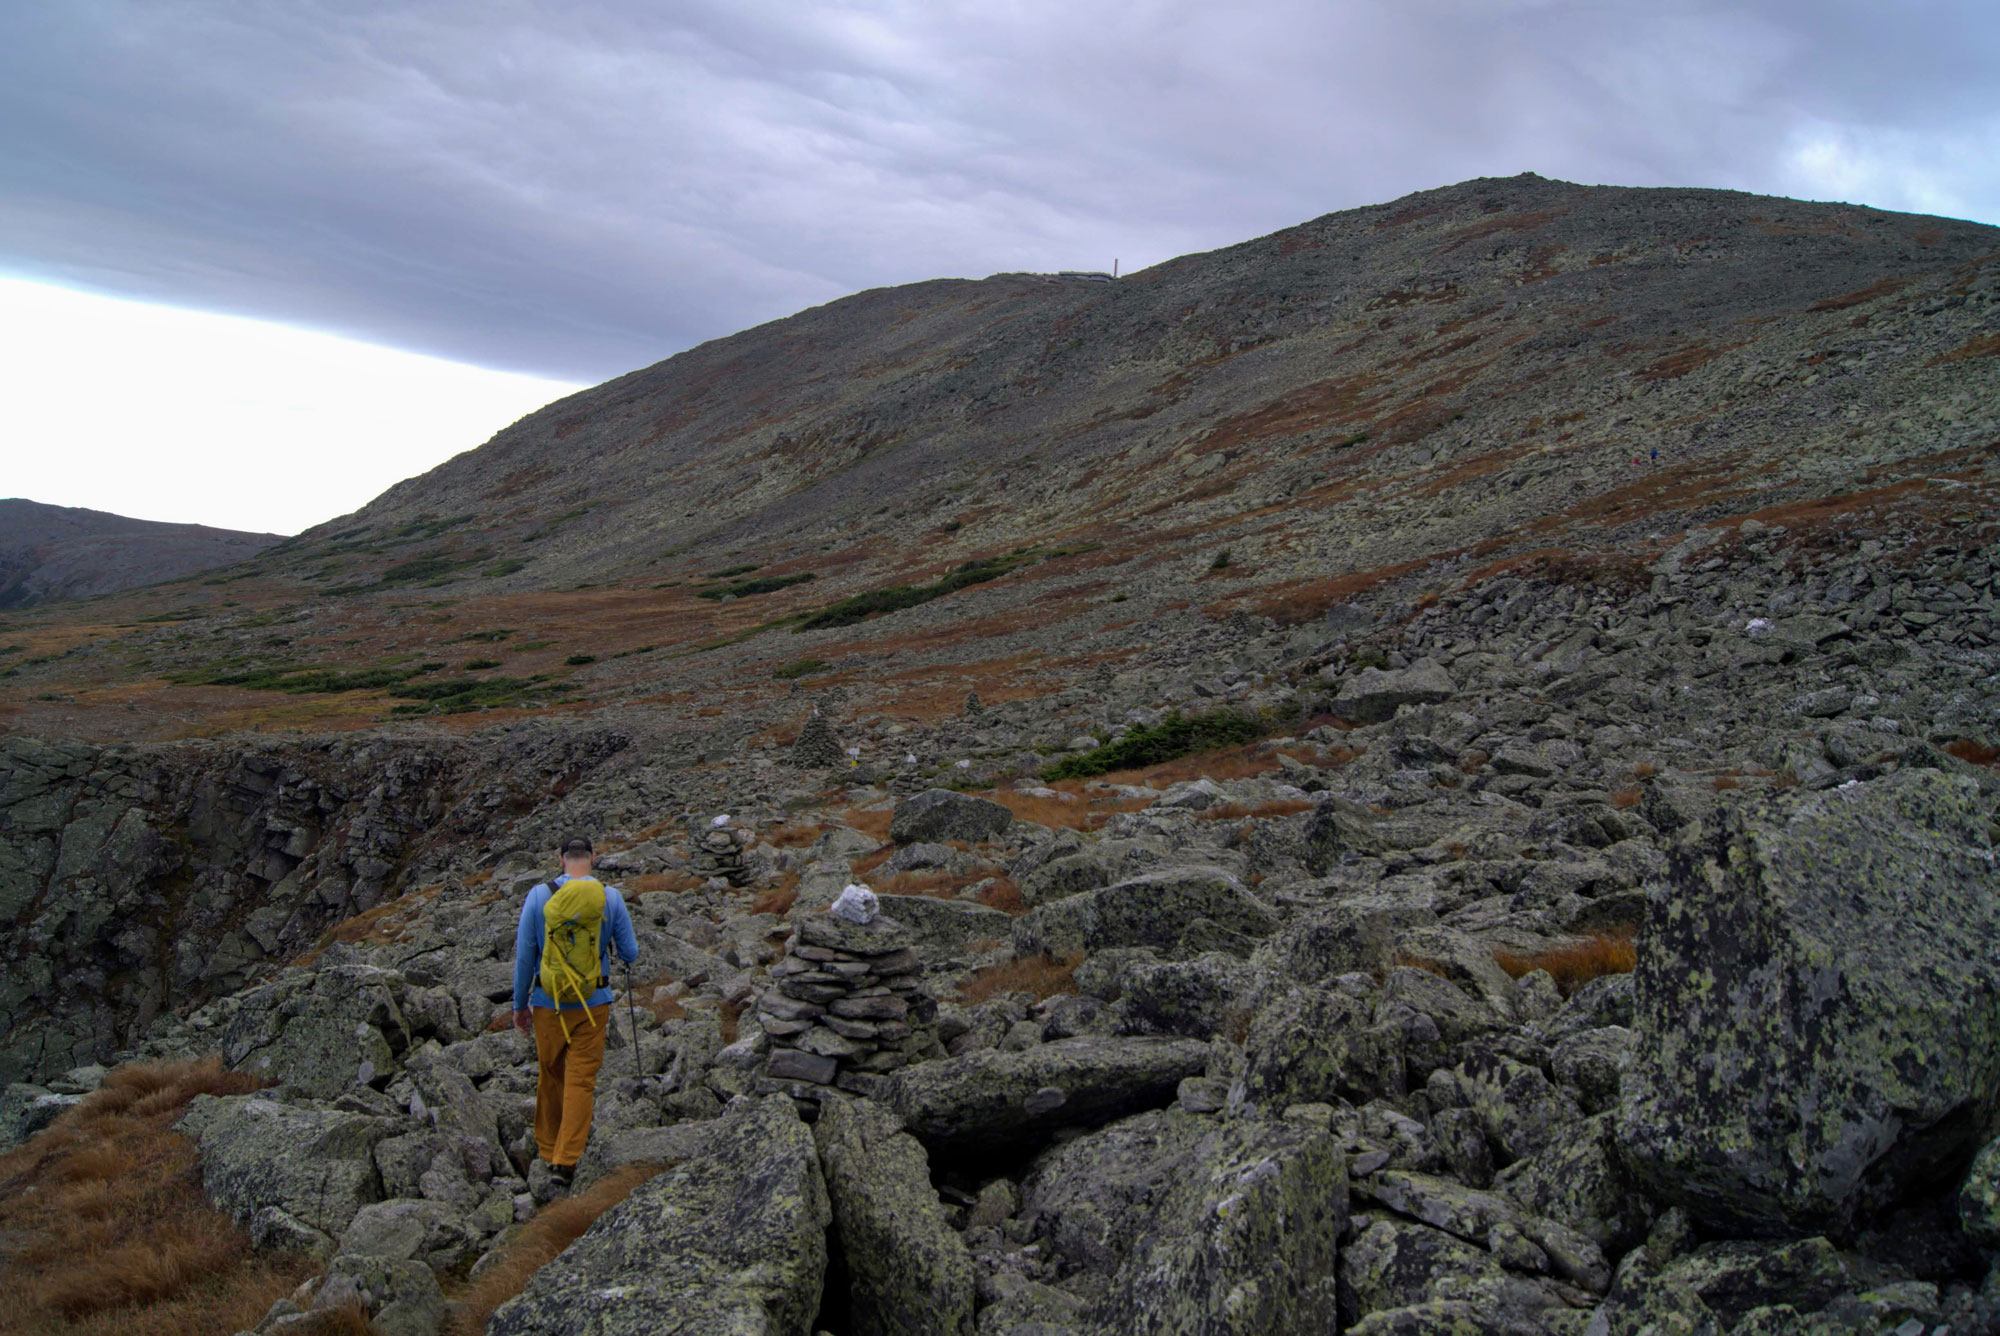 Crossing the Alpine Garden below Mount Washington. | Credit: Tim Peck